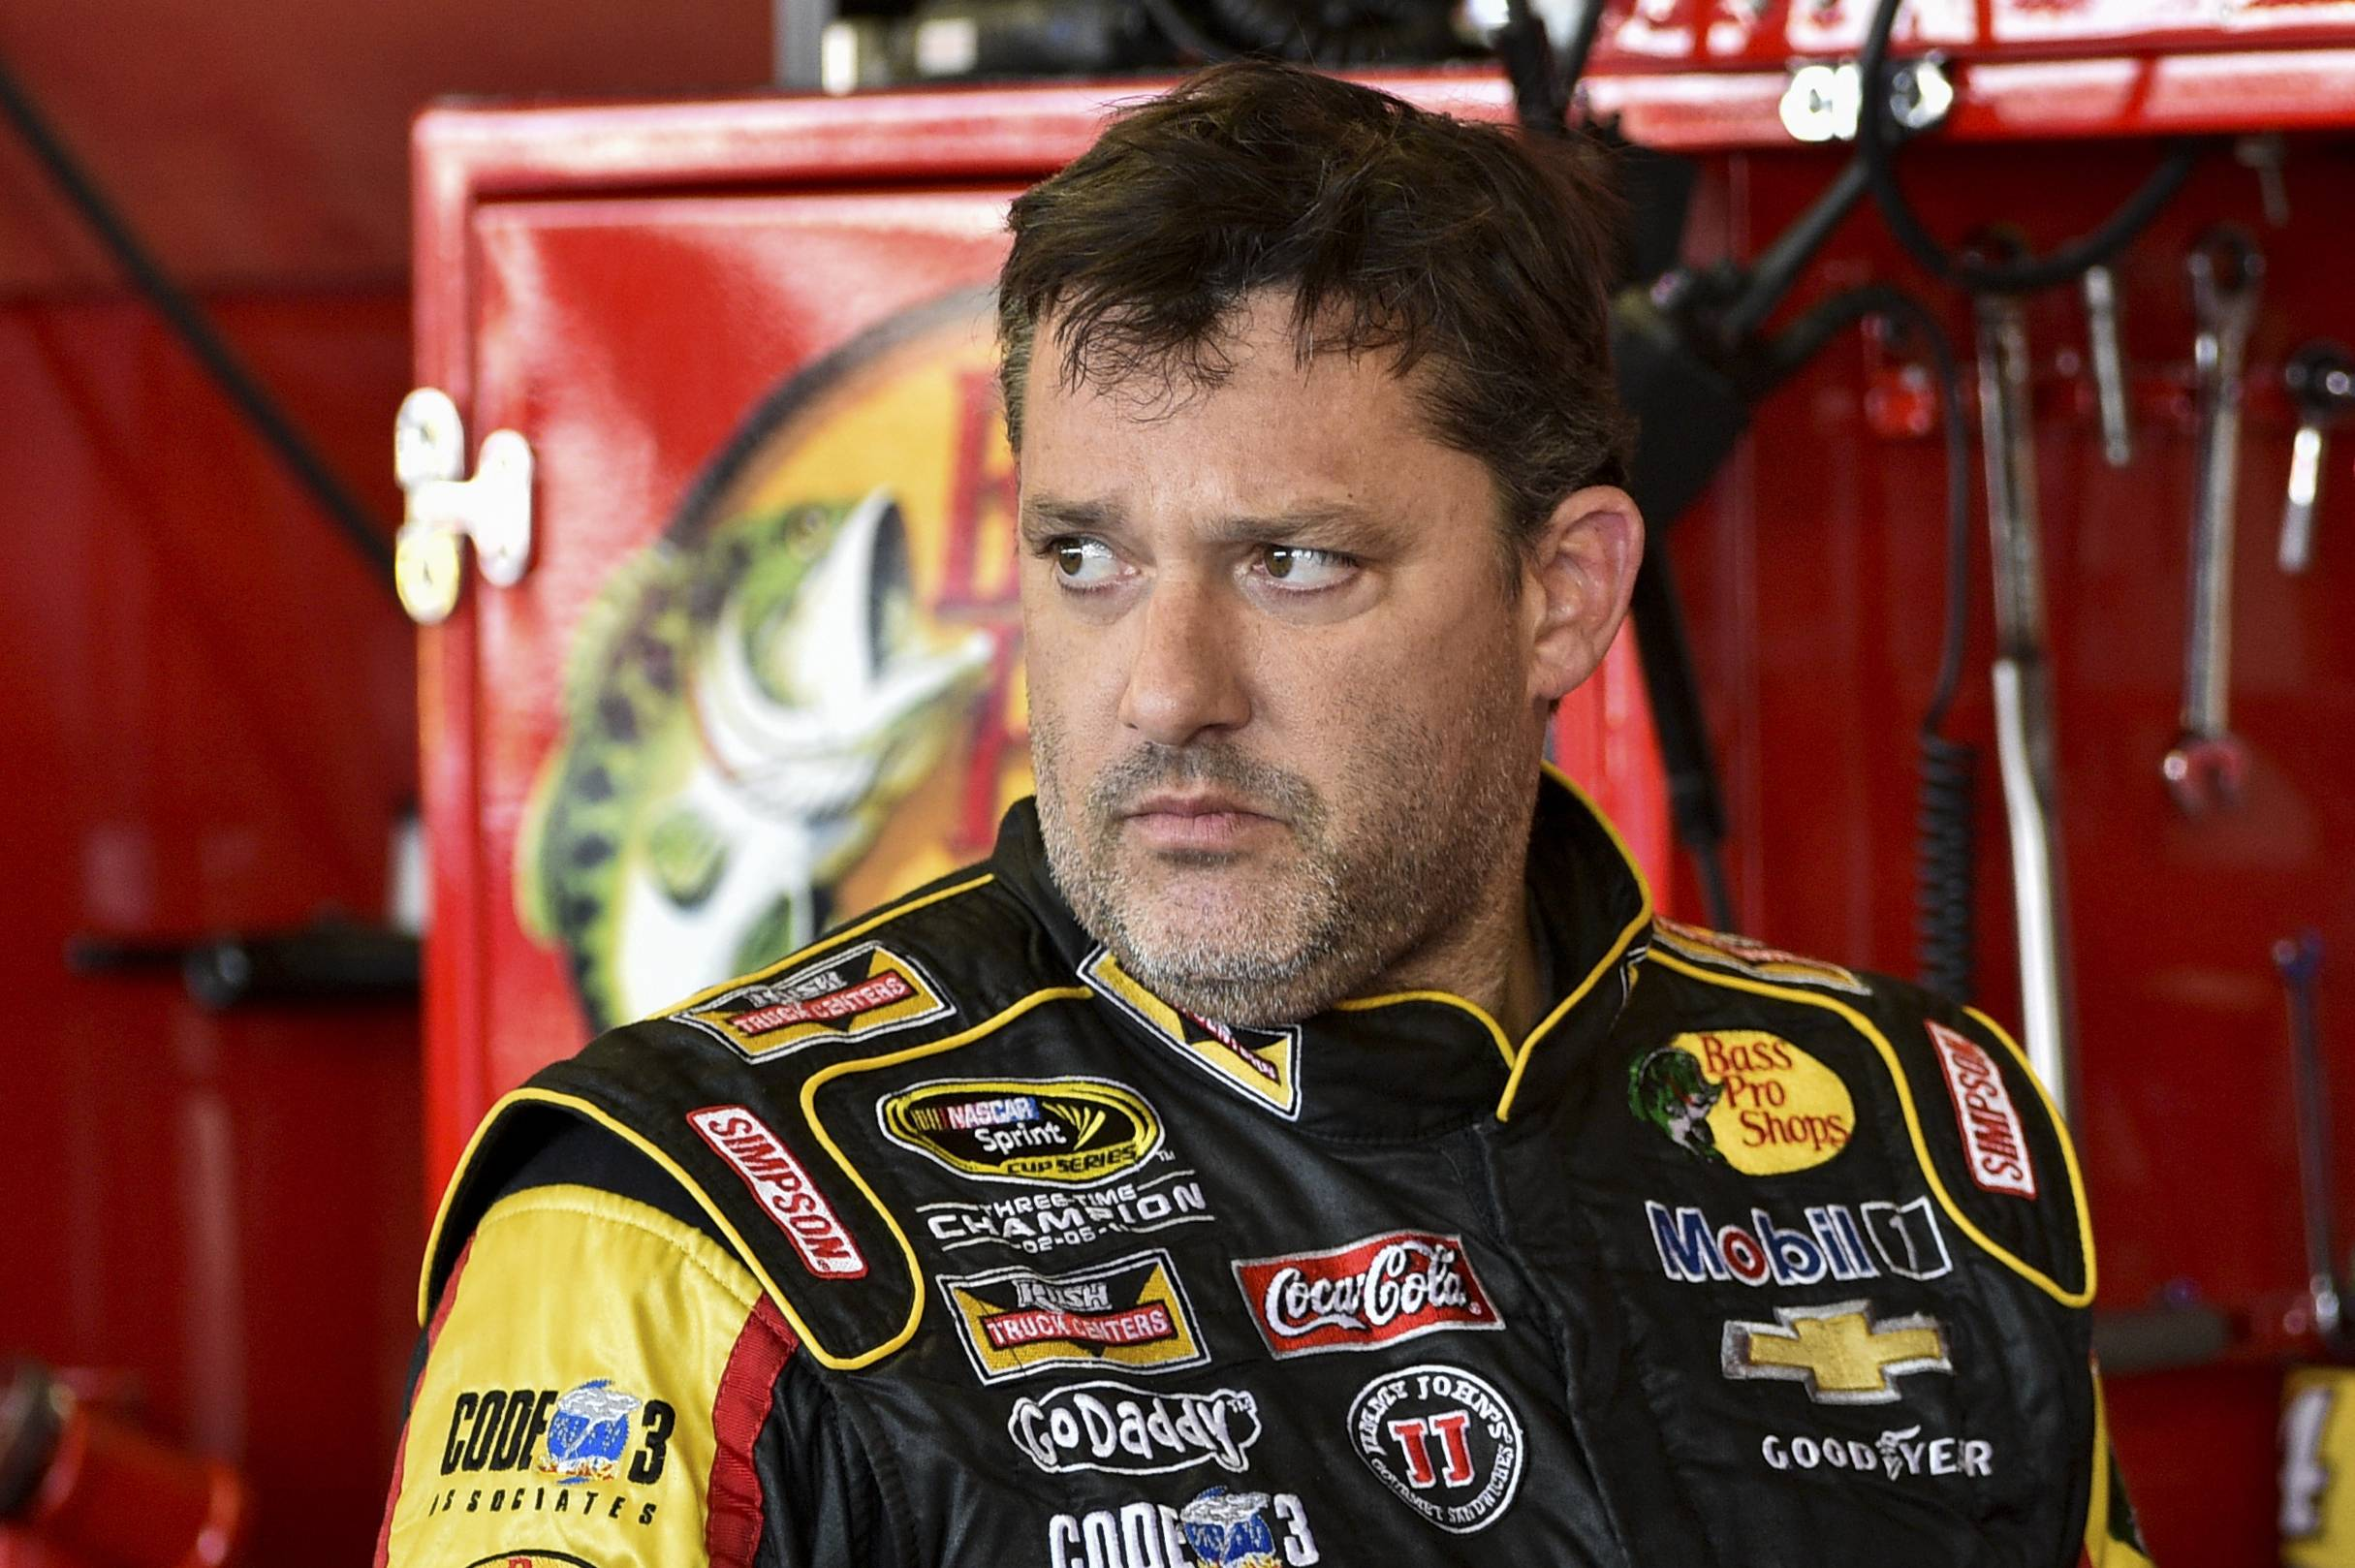 Tony Stewart pulls out of NASCAR race after fatal accident